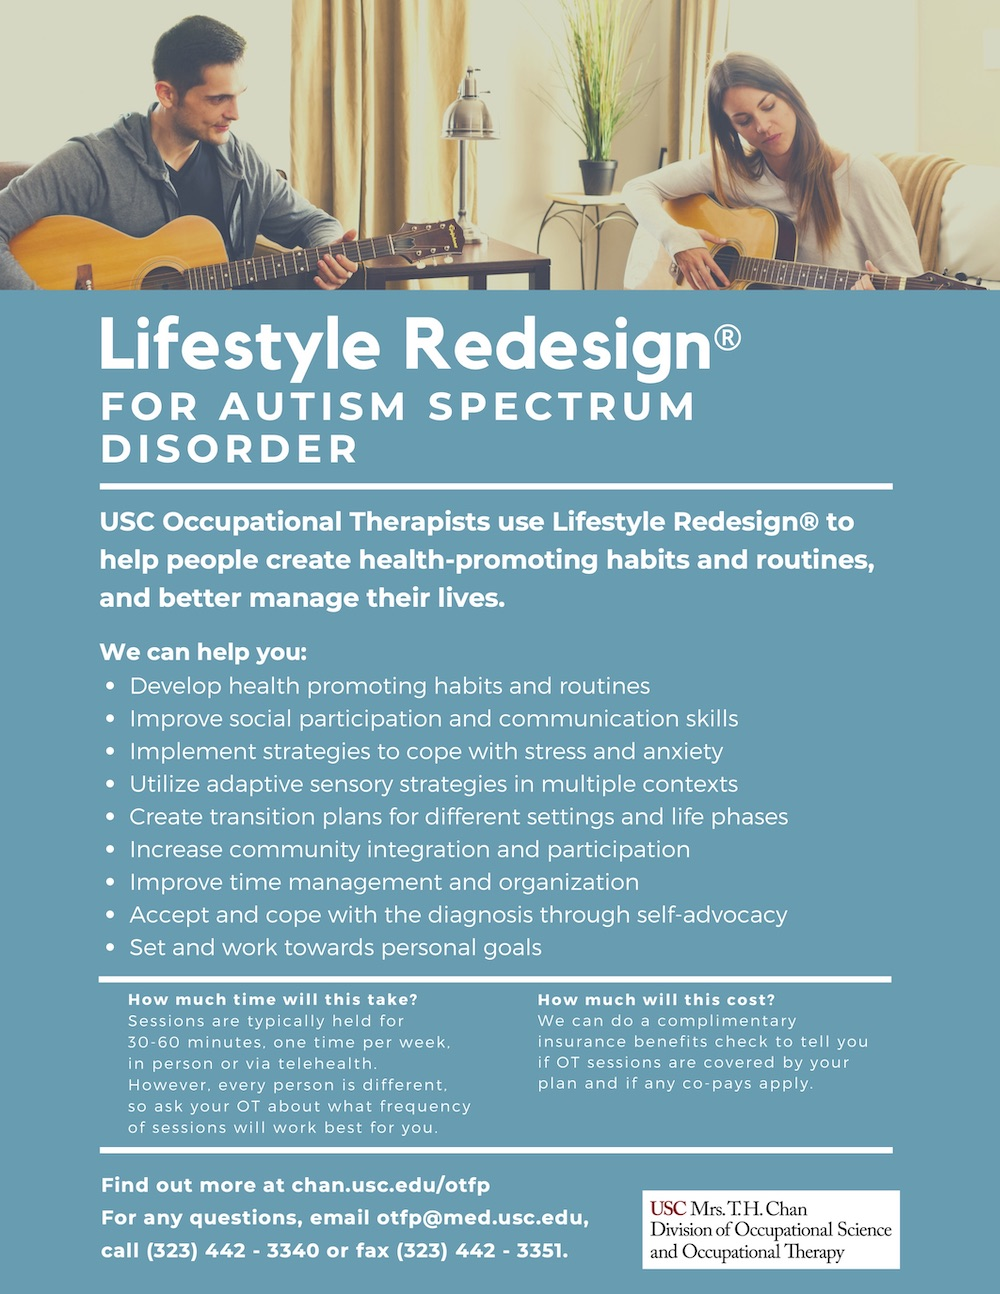 Lifestyle Redesign for Autism Spectrum Disorder